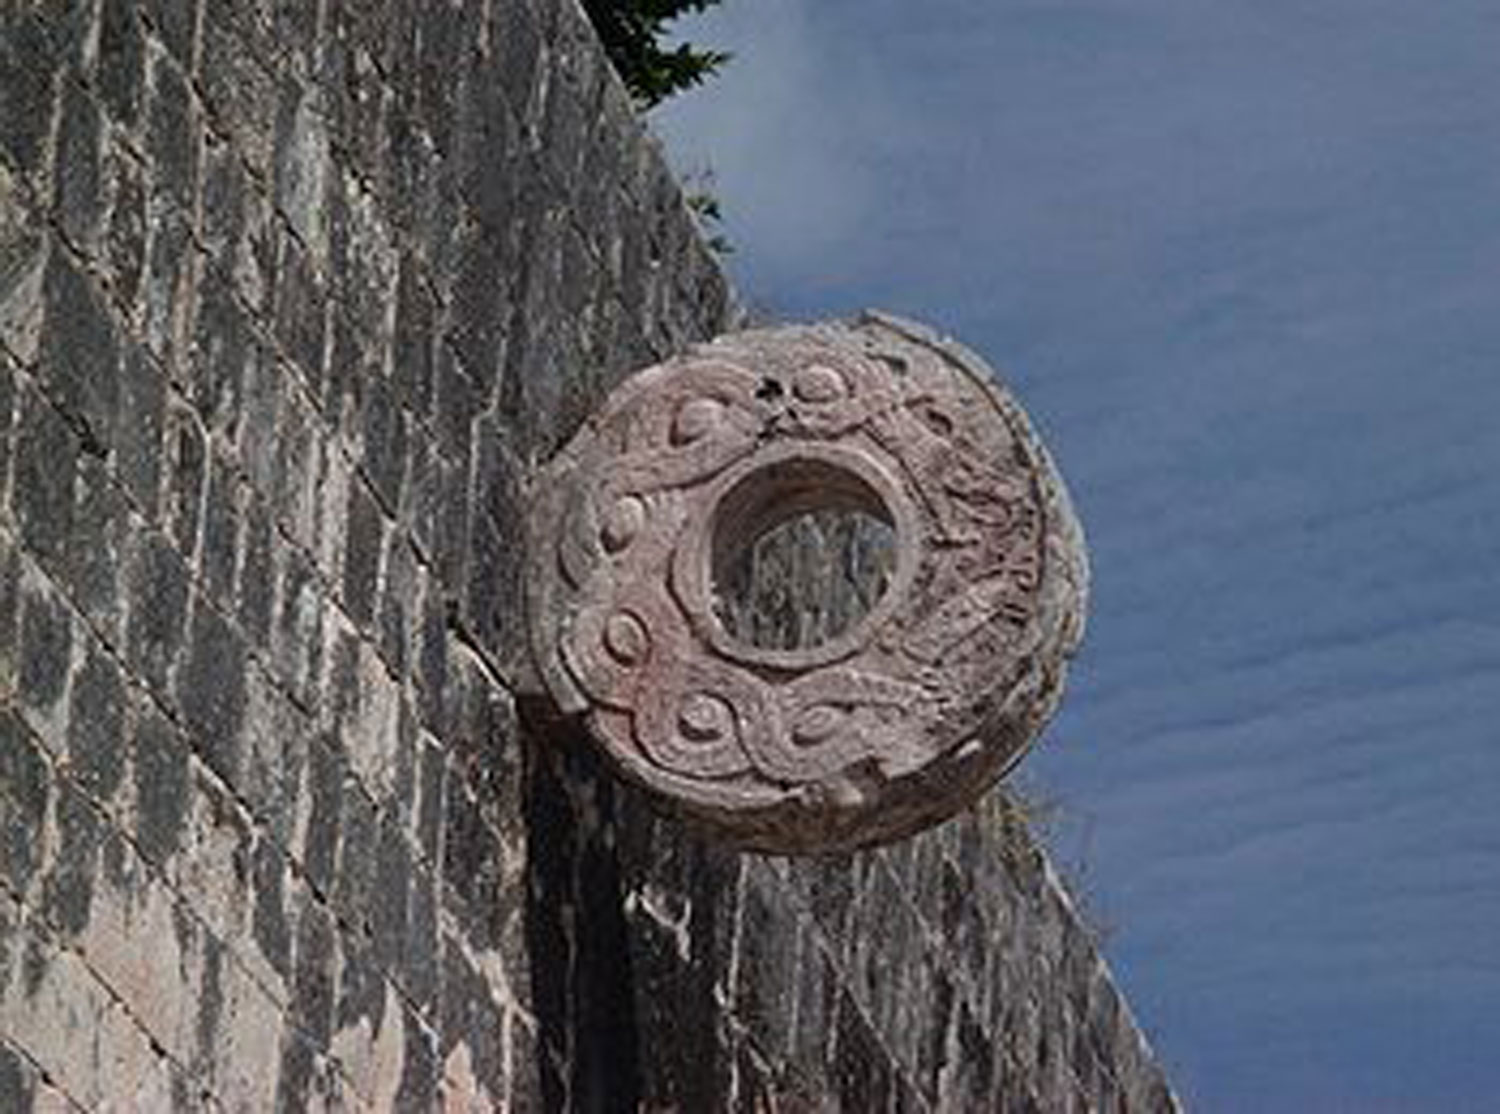 The ball court ring at  Chichén Itzá. The rings often had images of celestial bodies or serpents.